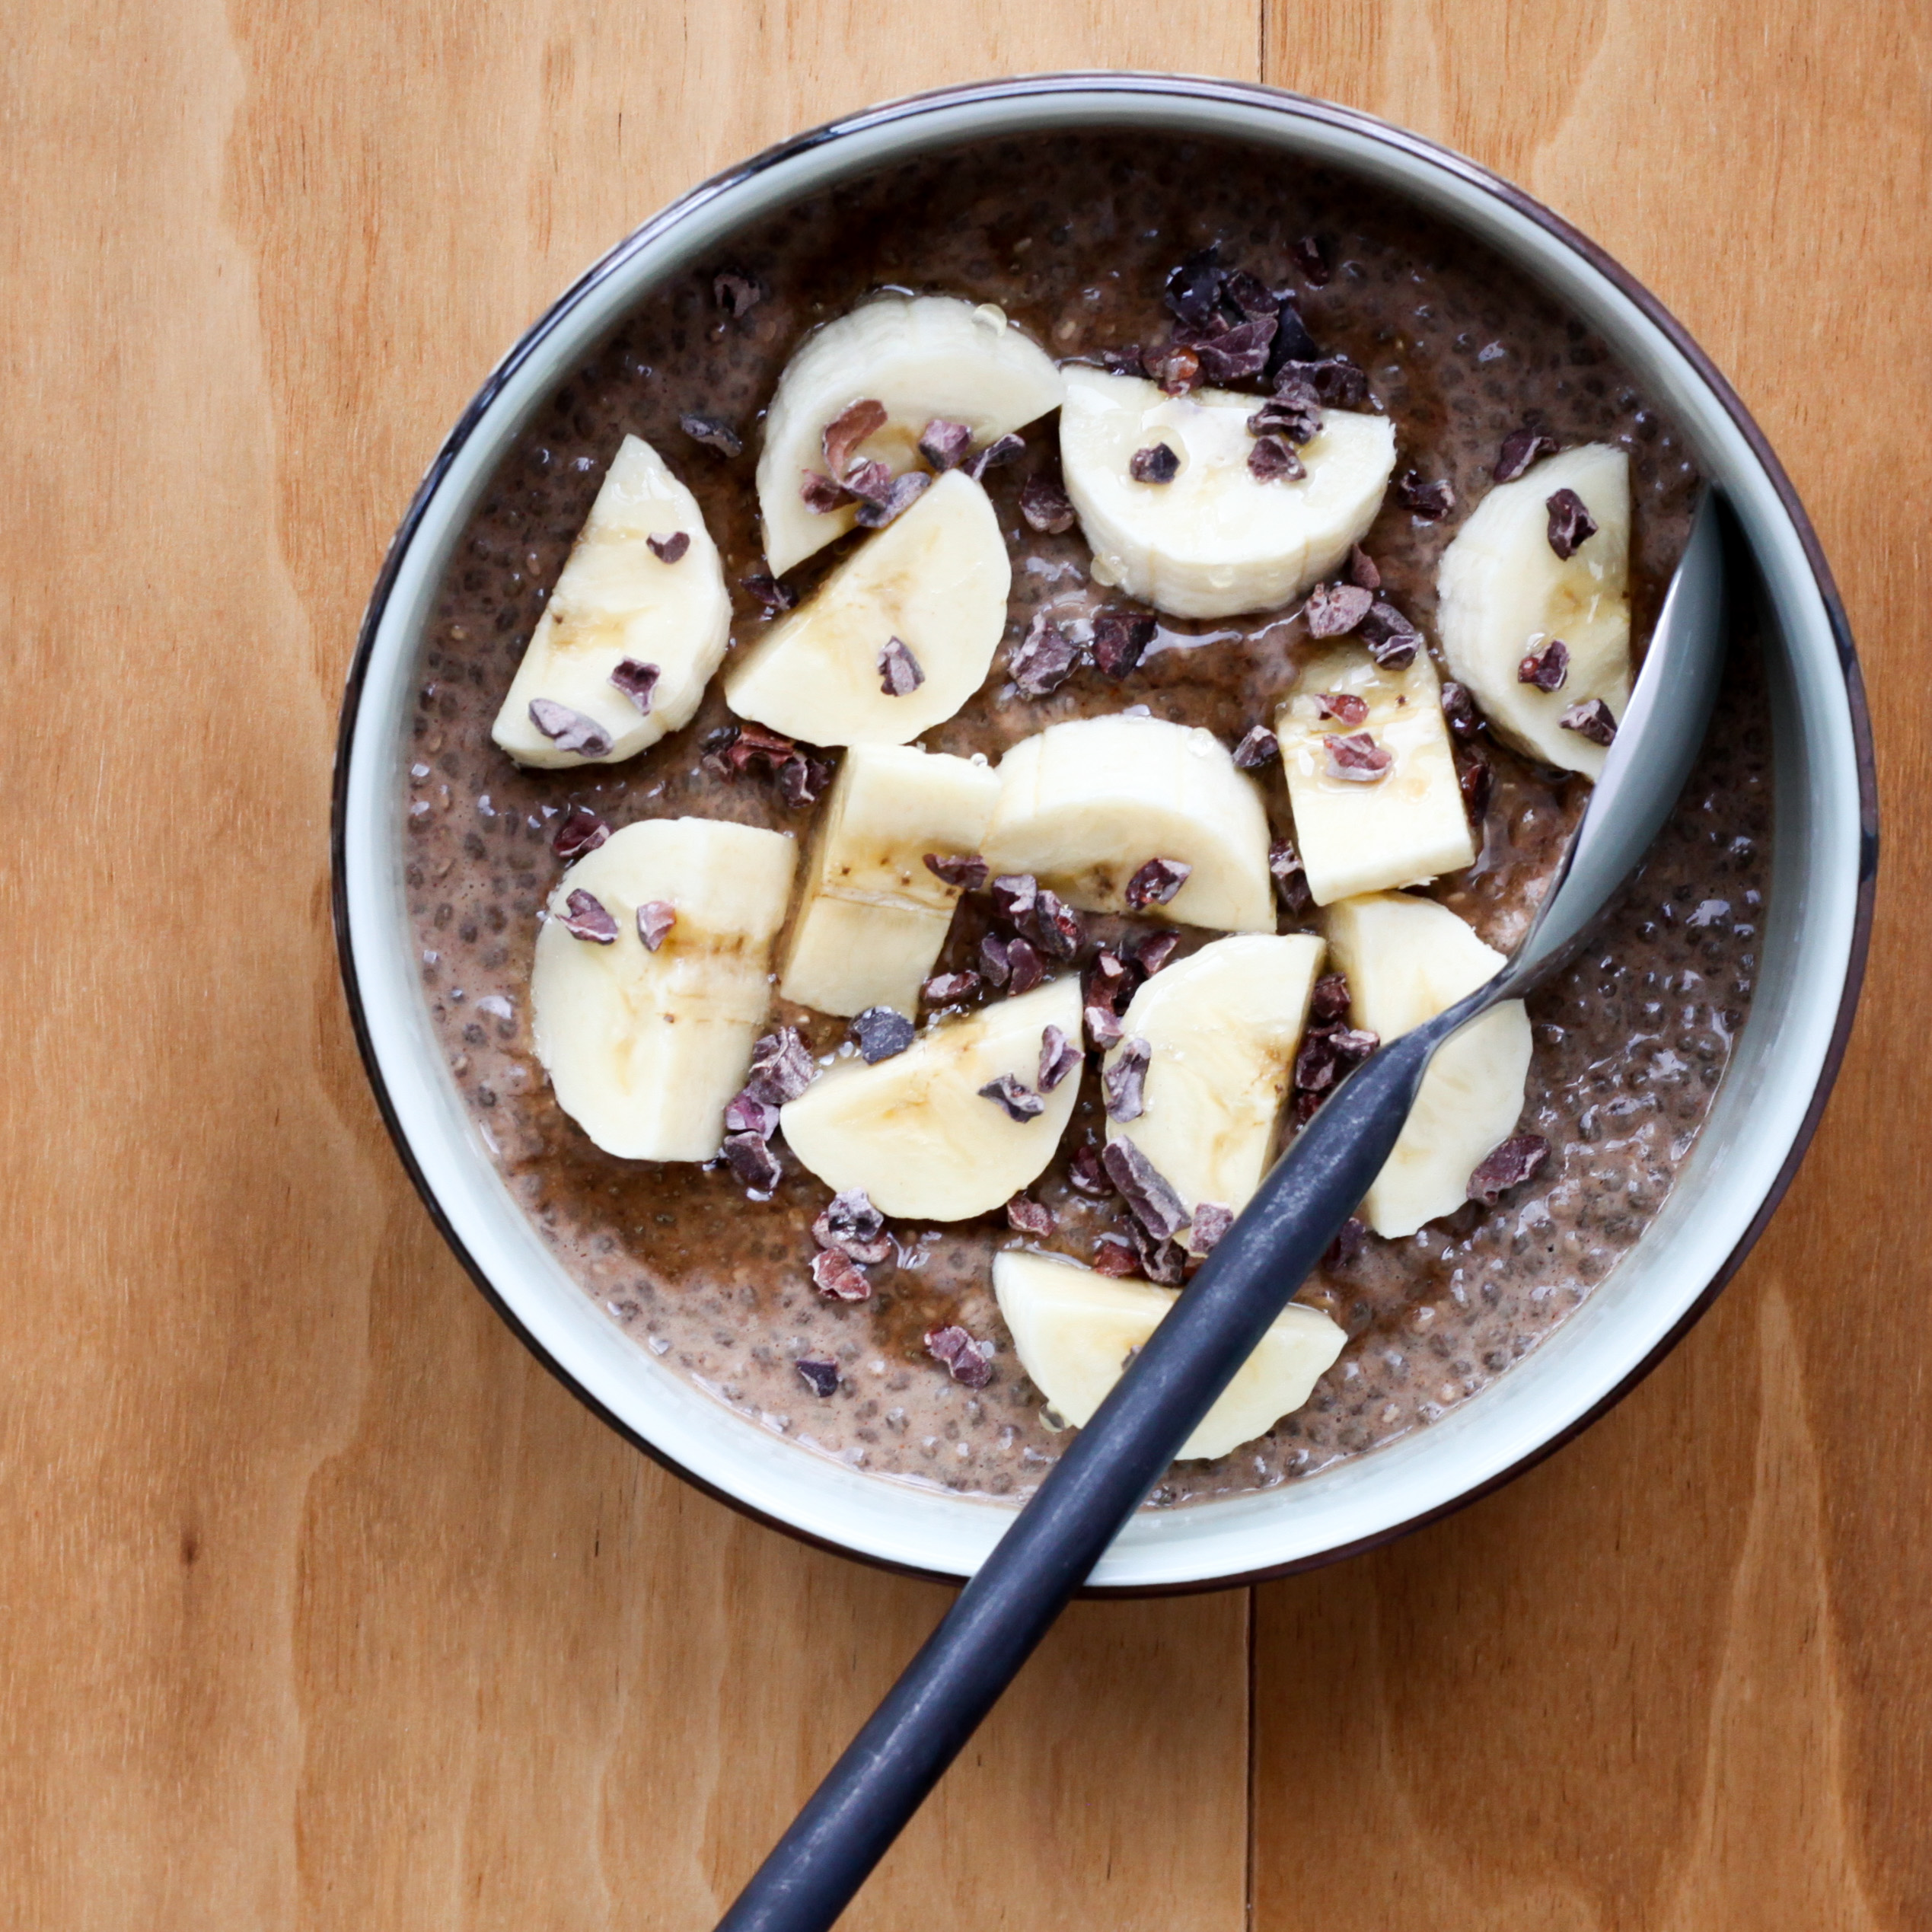 Chocolate Chia Pudding With Cacao Nibs | amodestfeast.com | @amodestfeast